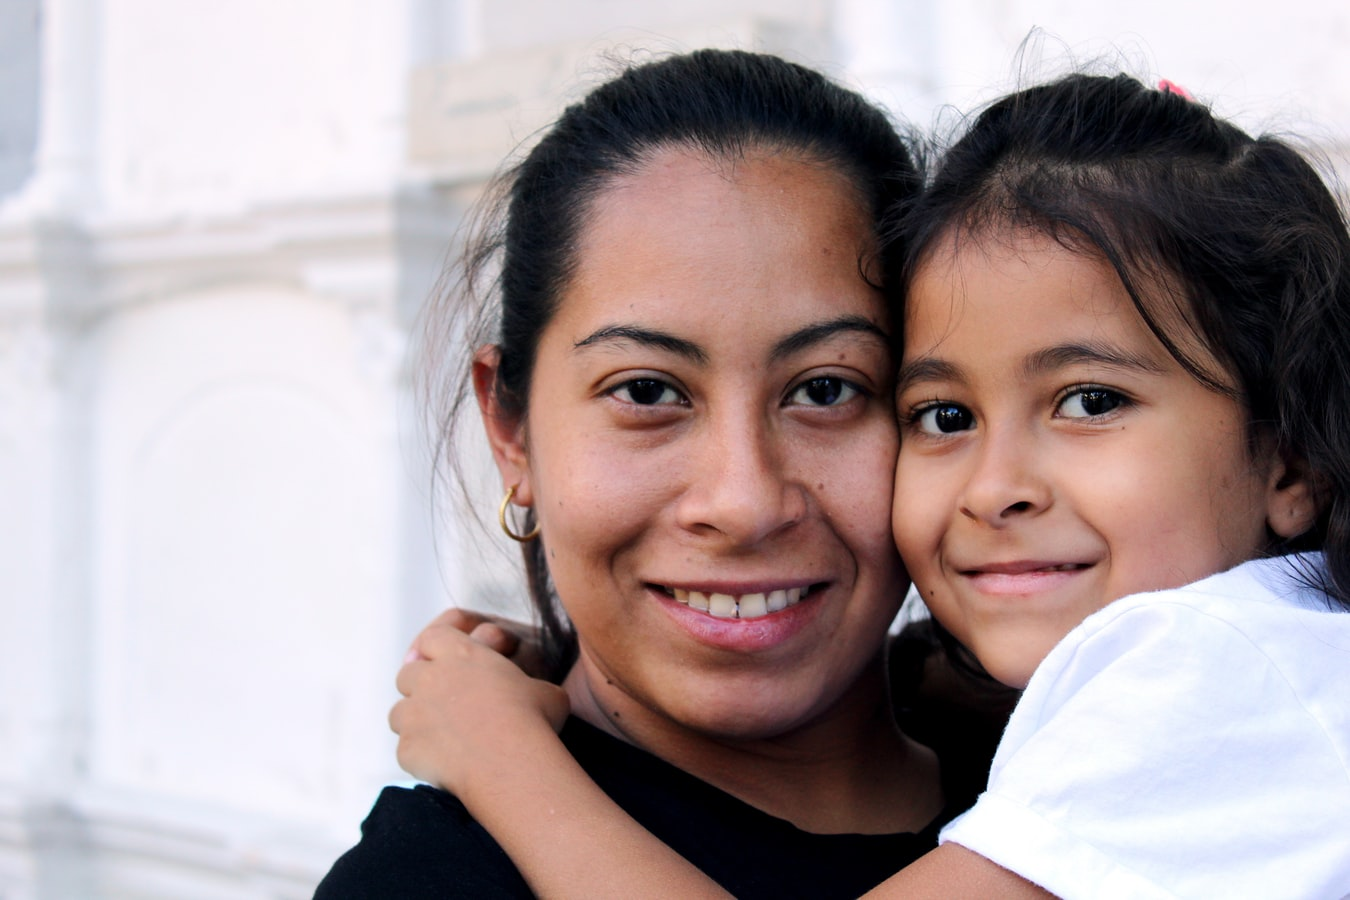 Sometimes being placed in Deportation Court (EOIR) can be a blessing in disguise